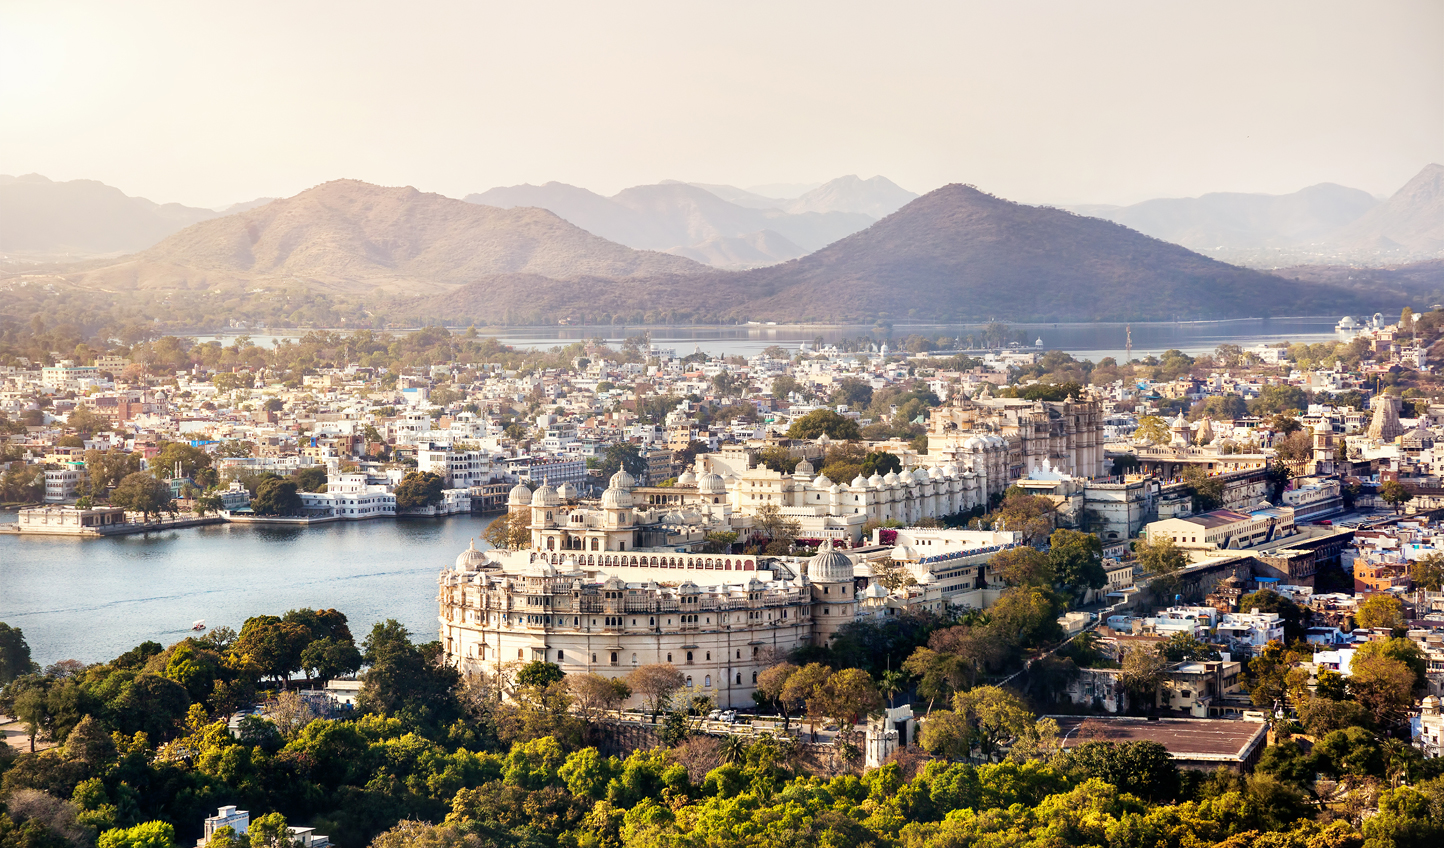 Admire the beauty of Udaipur